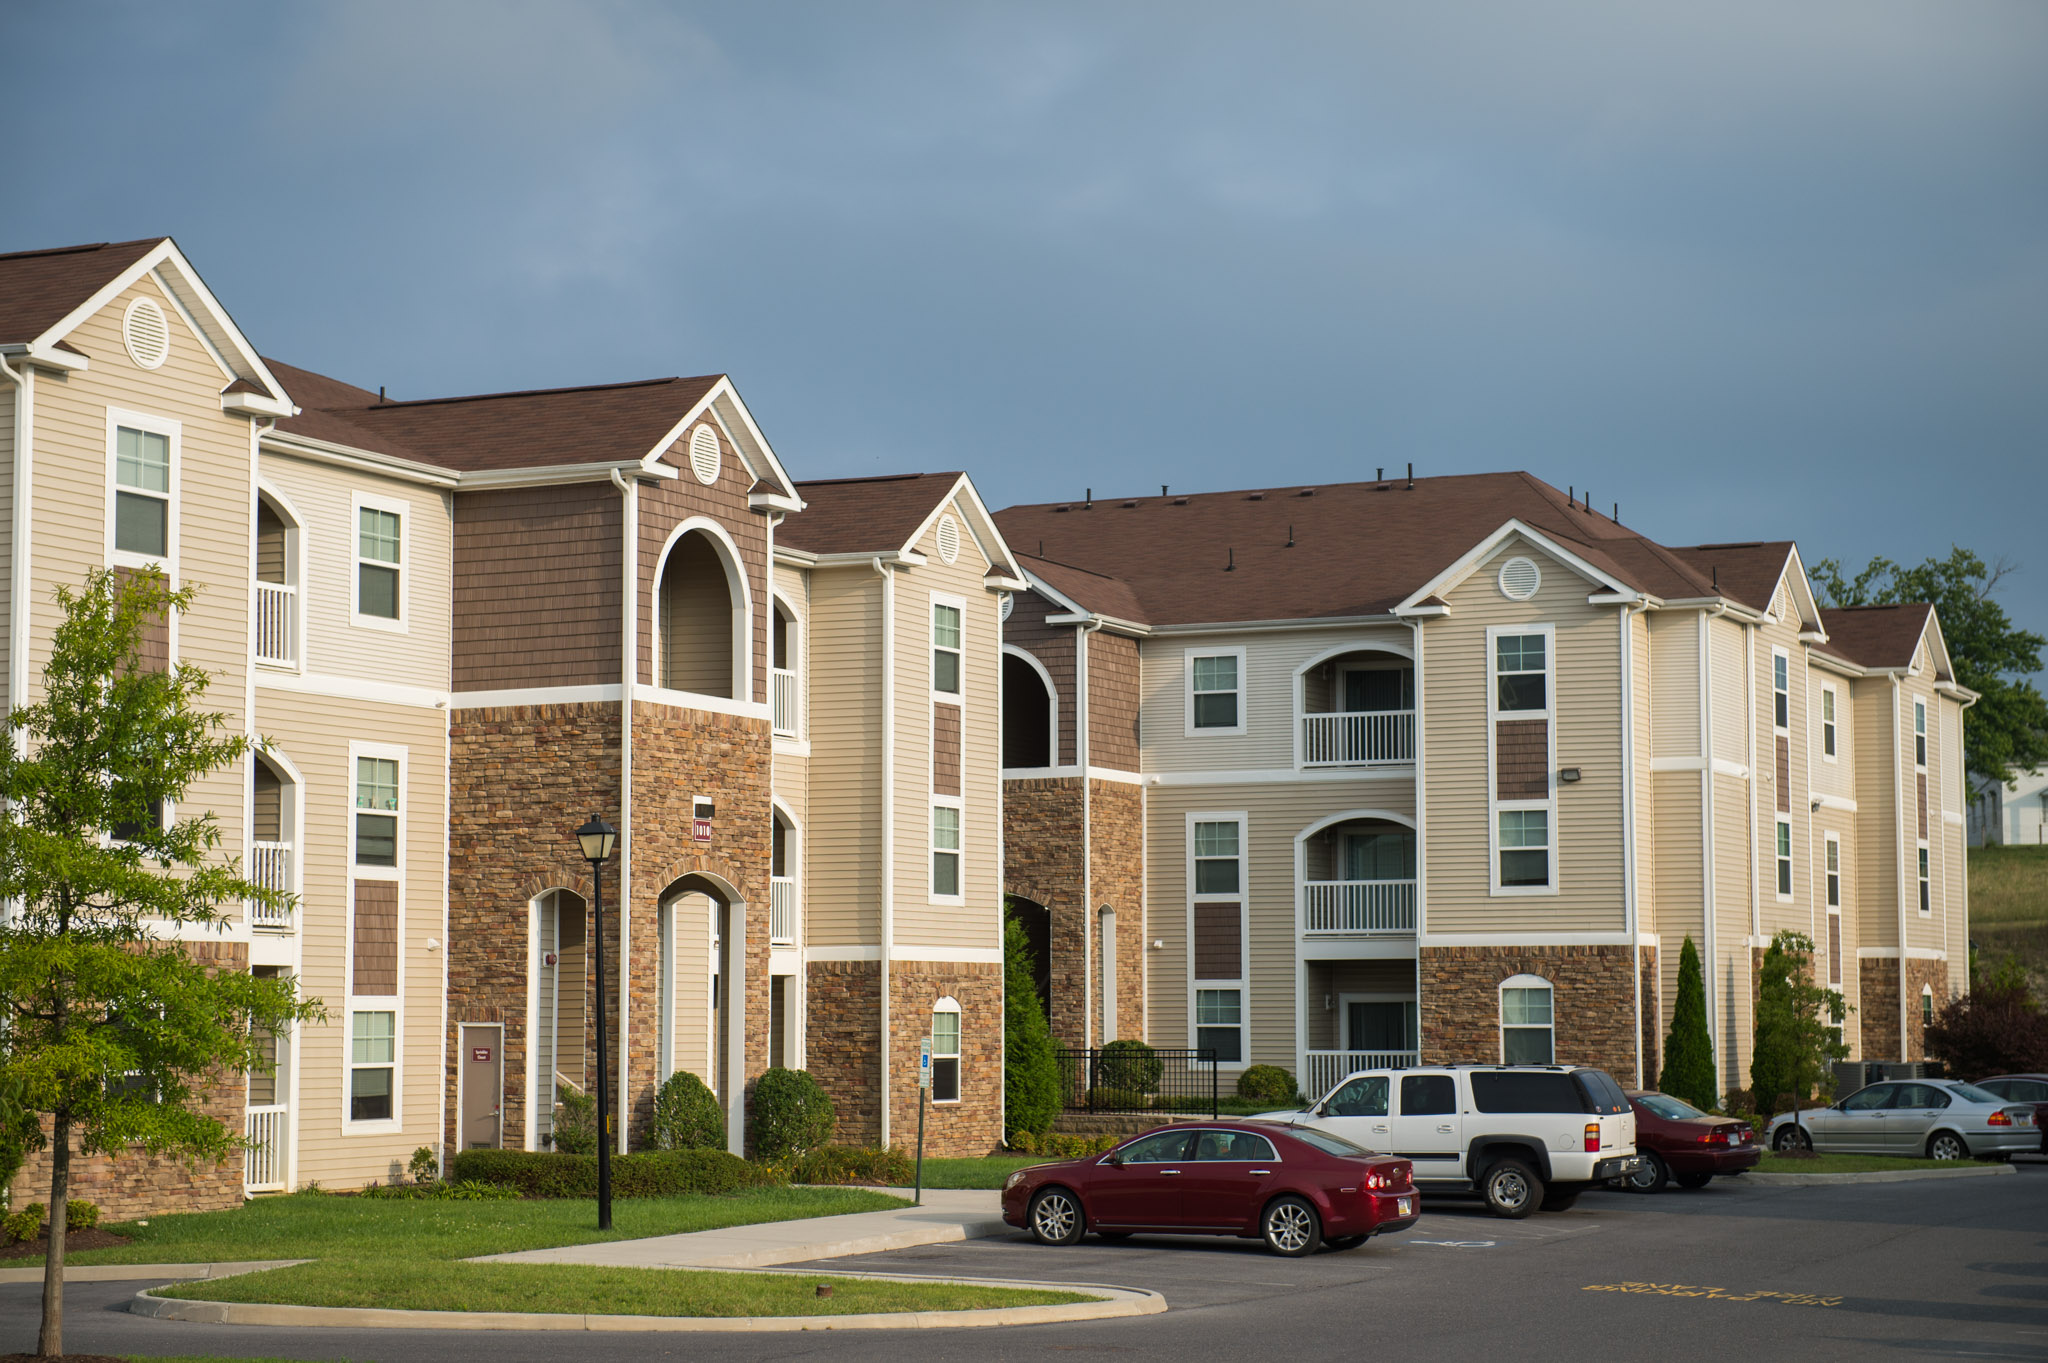 North 38 Exteriors for Web-1058.jpg